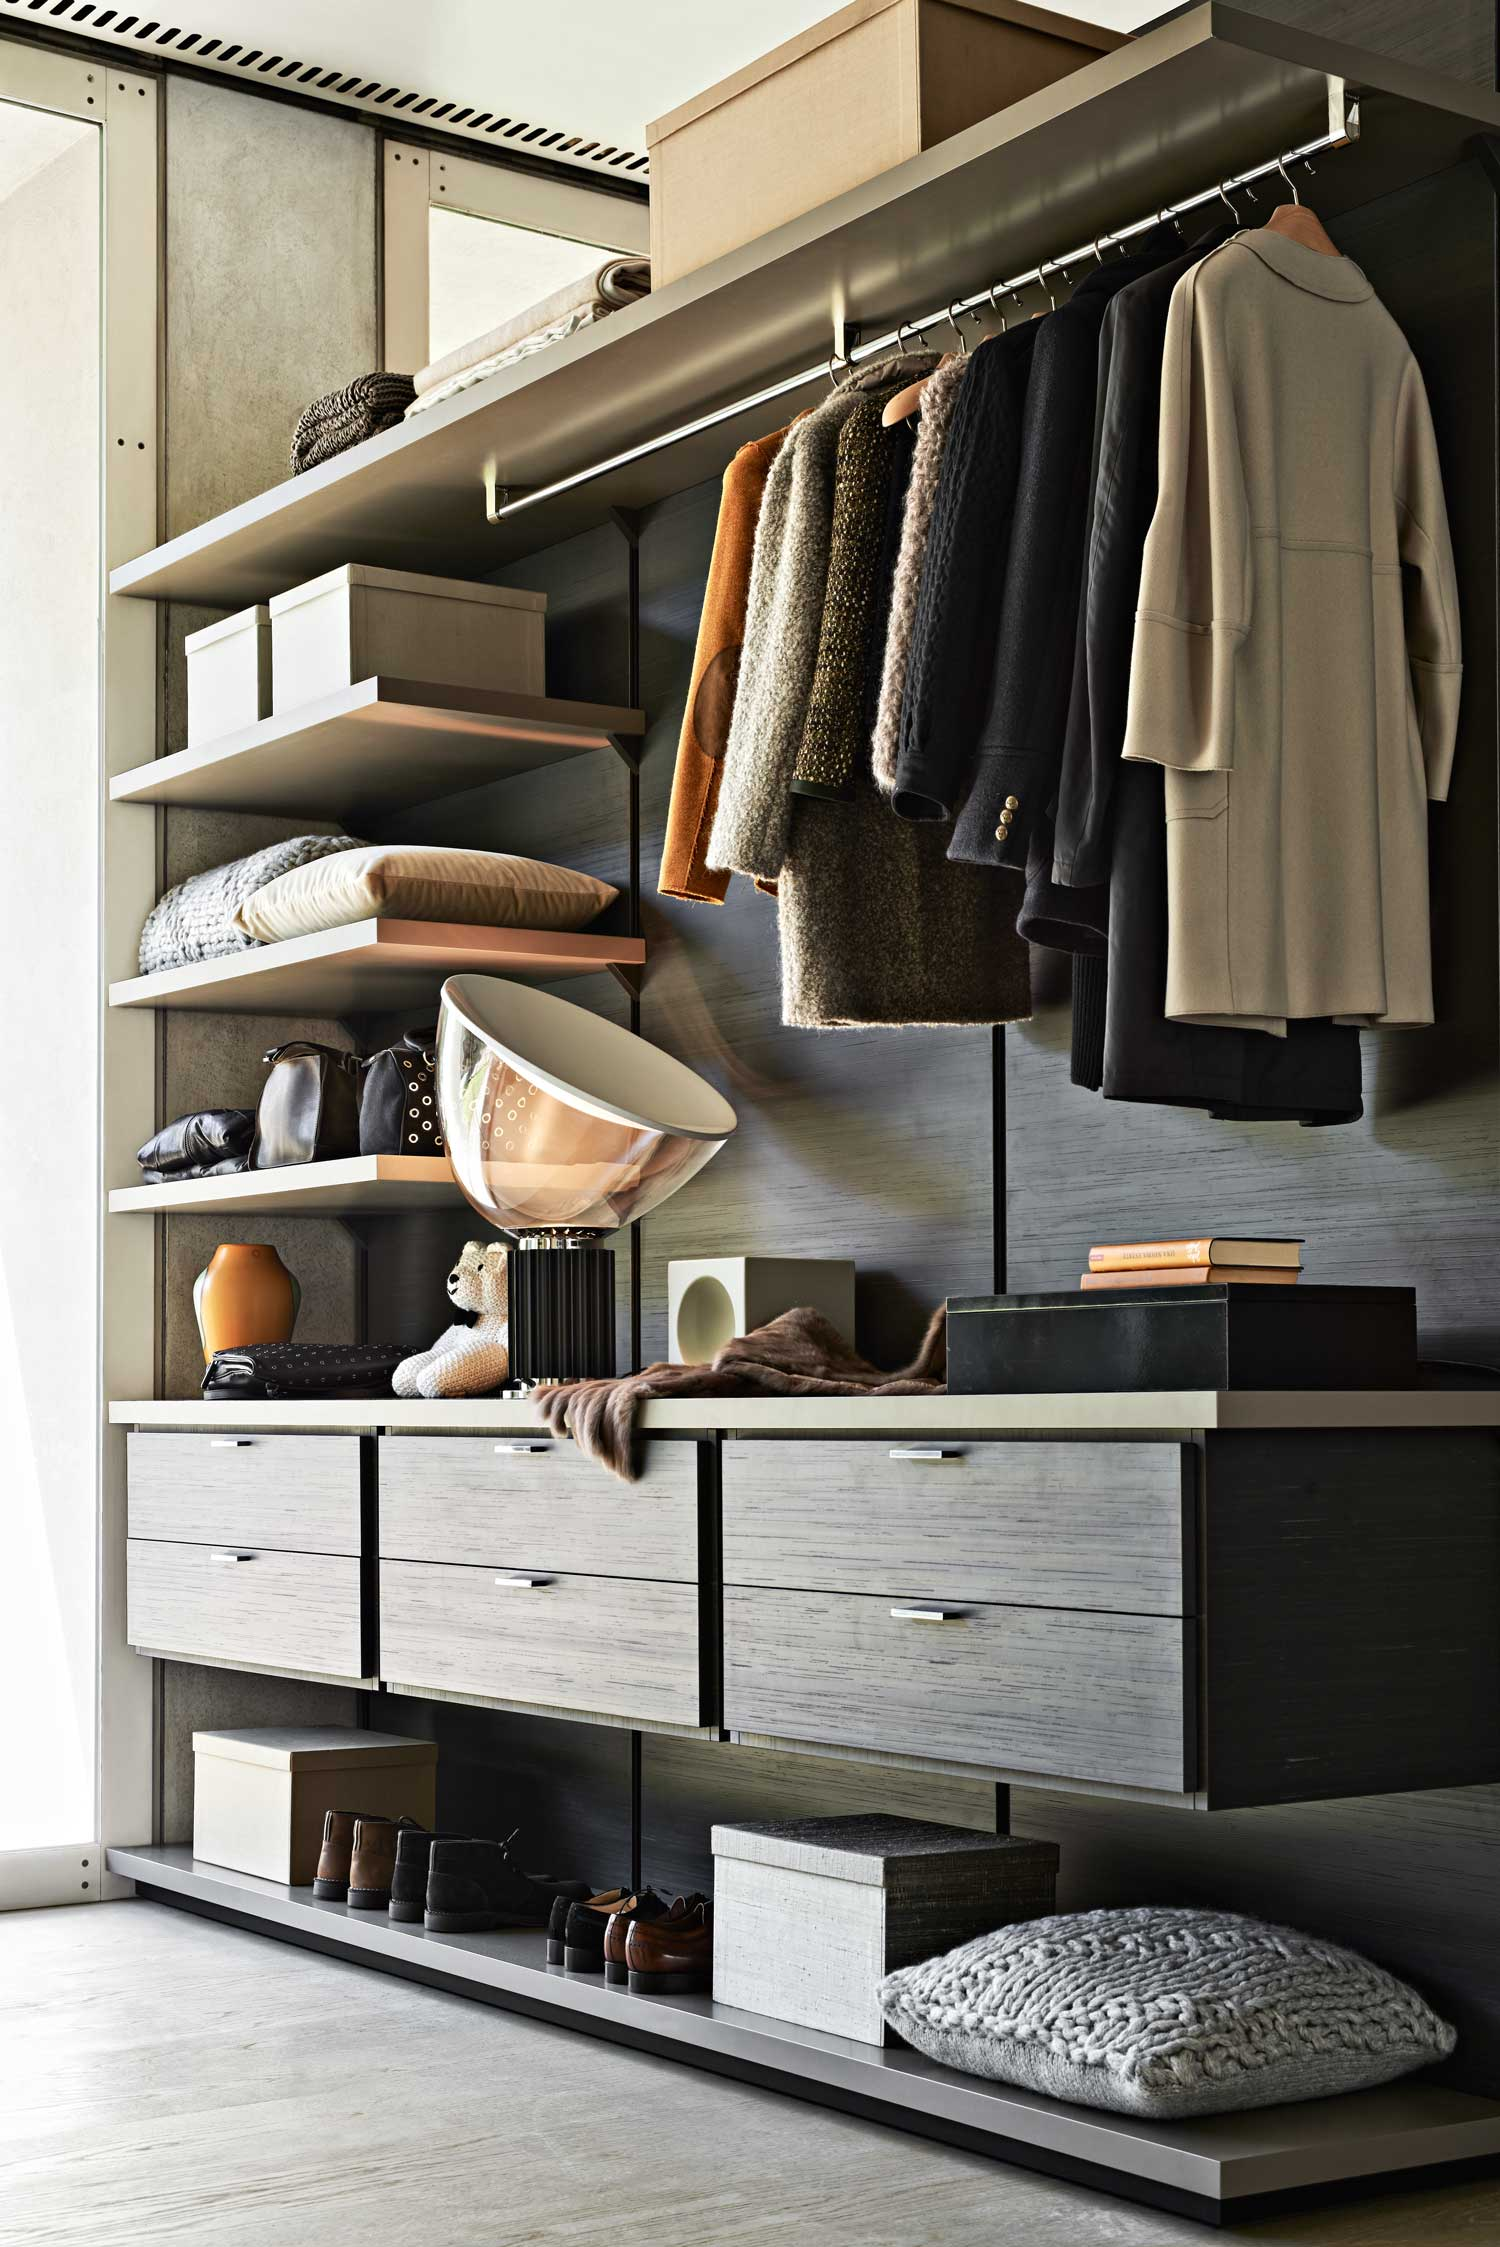 molteni c wardrobe systems launch at hub yellowtrace. Black Bedroom Furniture Sets. Home Design Ideas